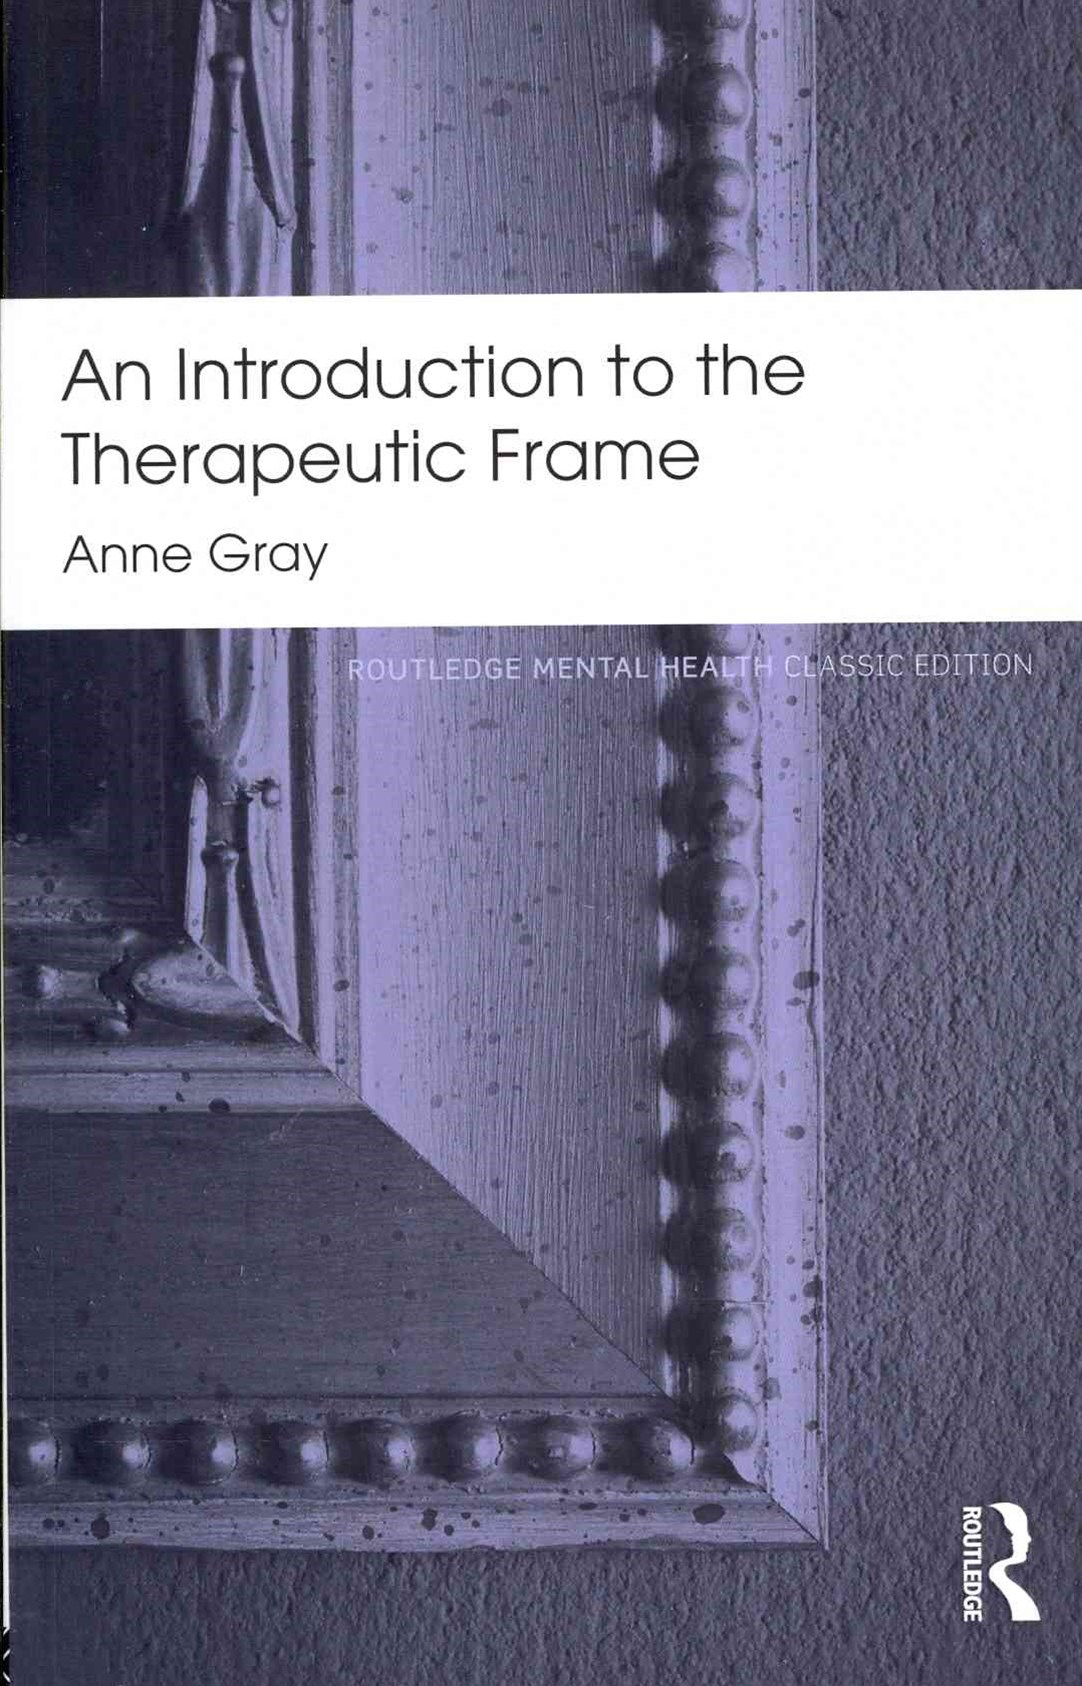 Introduction to the Therapeutic Frame